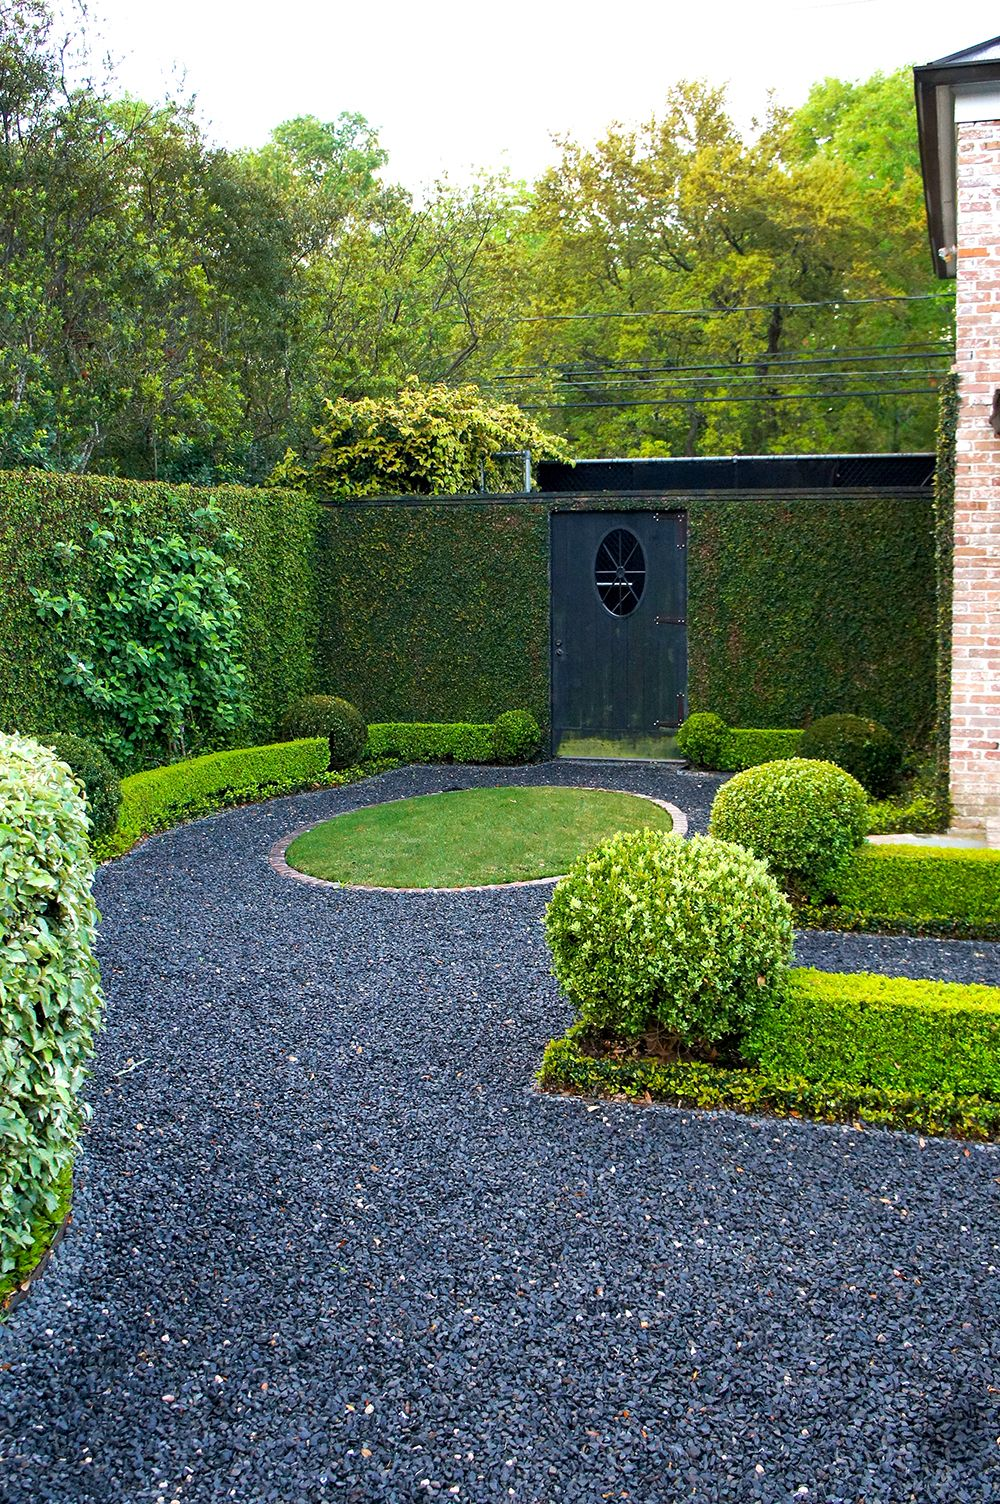 Behind the private driveway is a blackstar gravel path